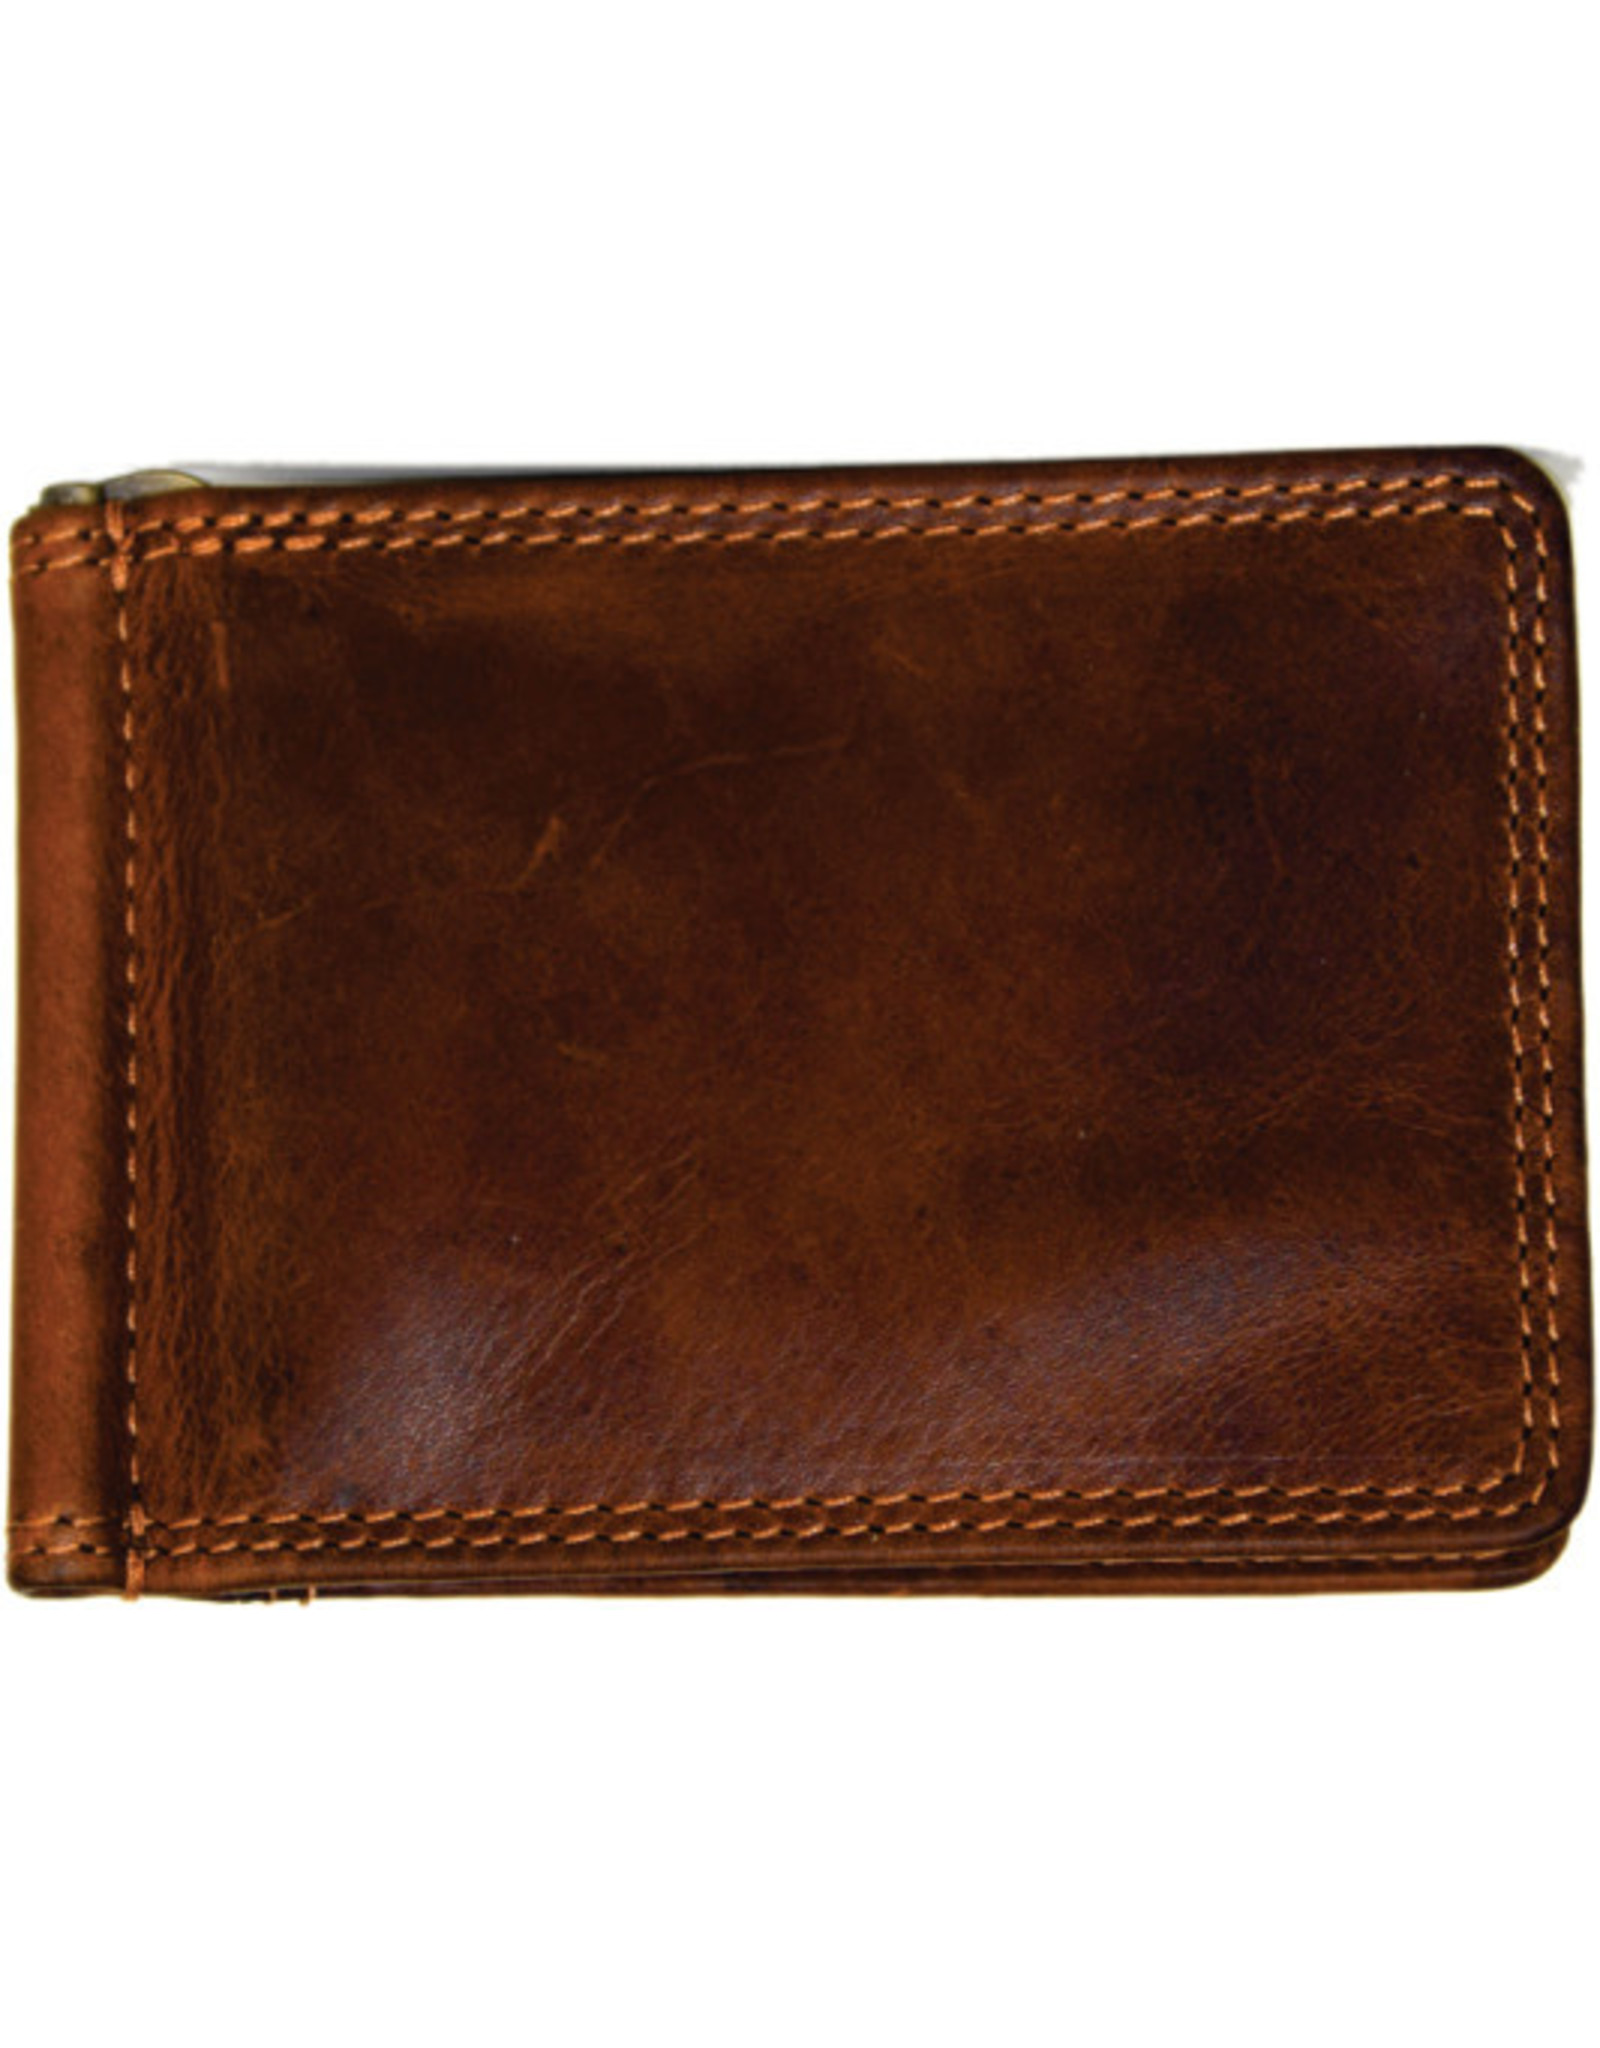 "Rugged Earth Rugged Earth 990018 Portefeuille  Brown W 4.5""H 3.25""*D 3/8"""